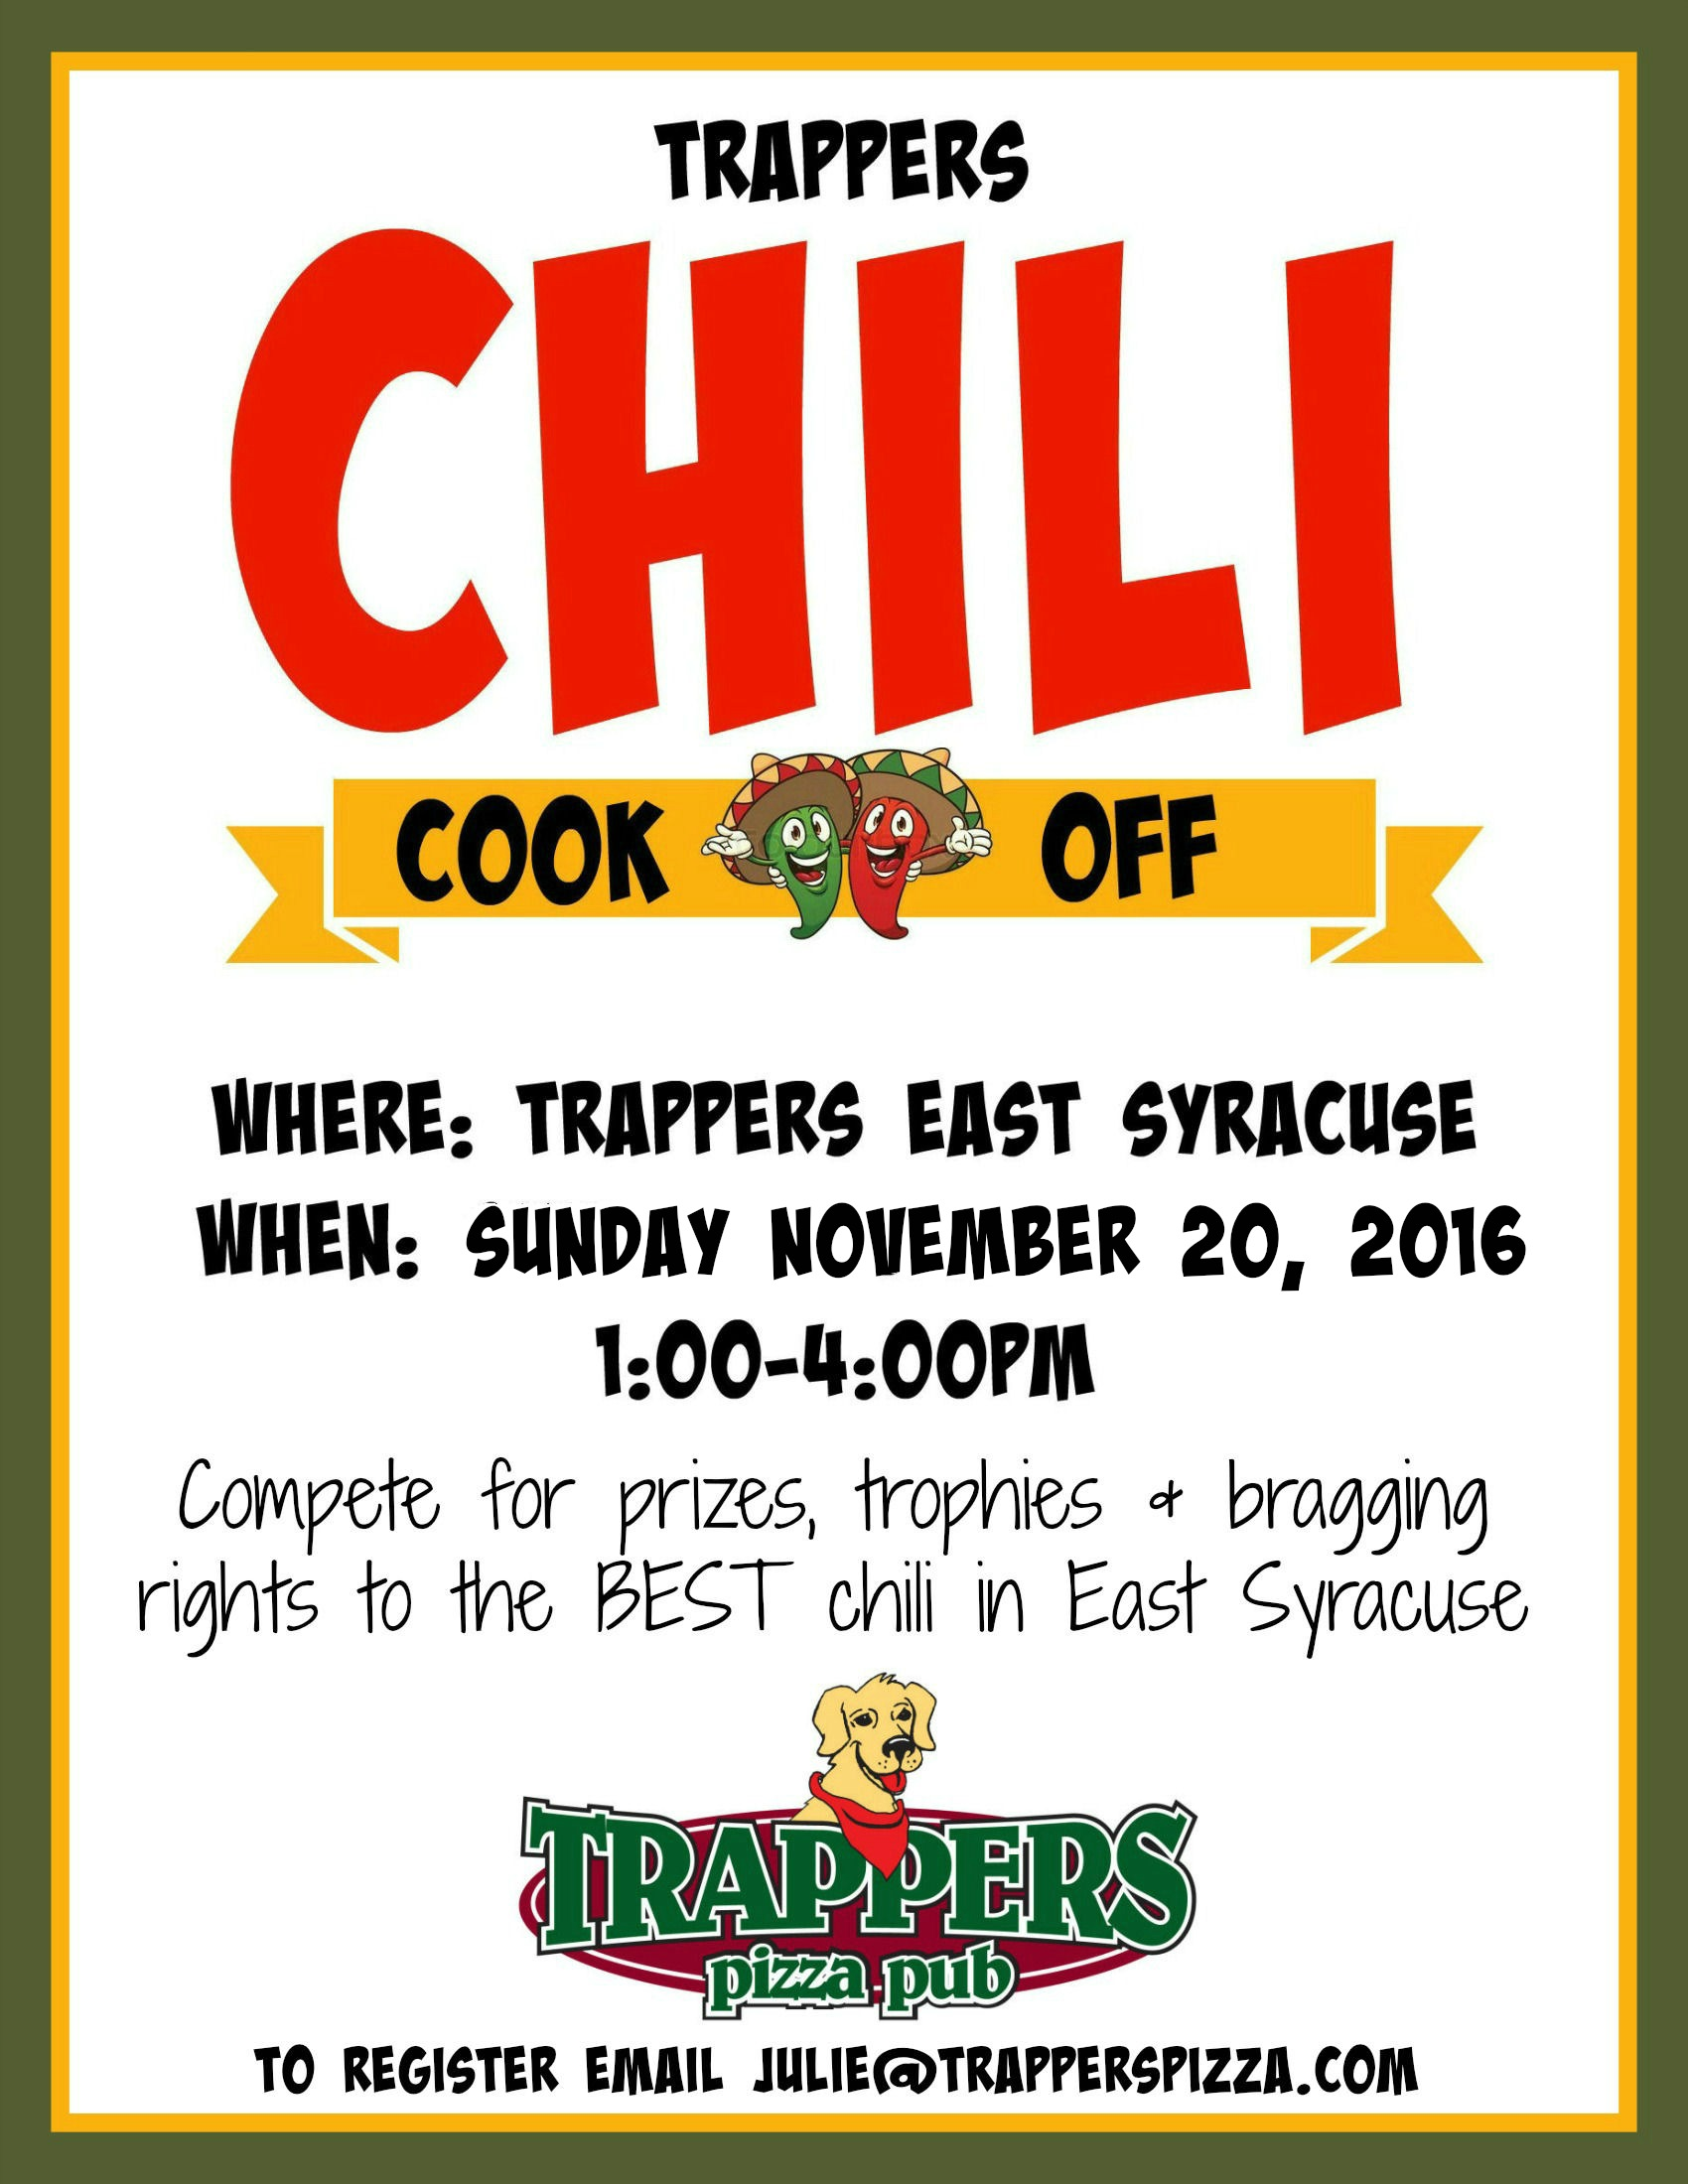 Chili cook off flyer template chili cook off images the best trappers chili cook off chili cook off flyer template xflitez Choice Image